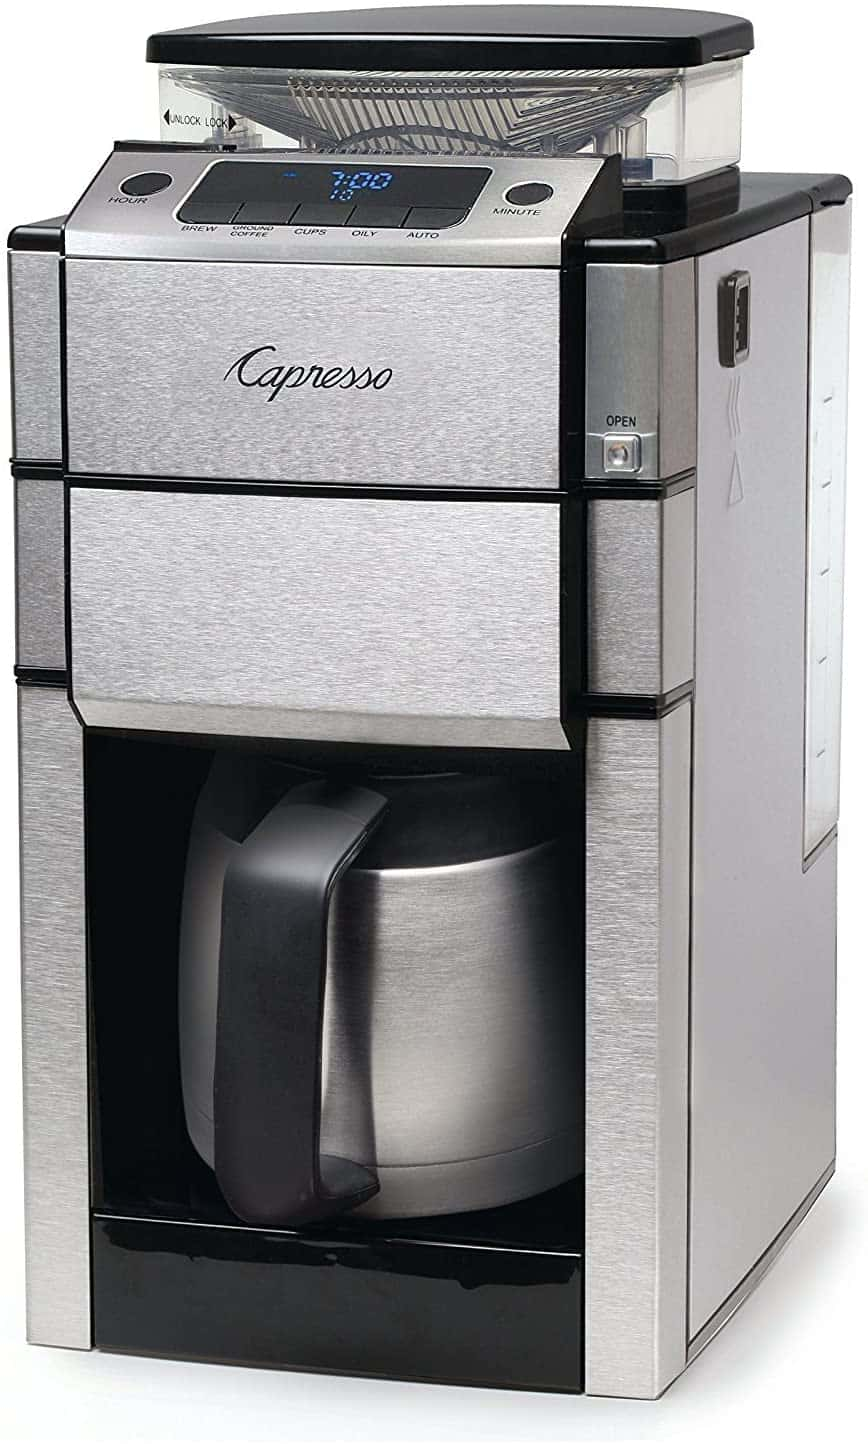 Capresso Coffee Maker with Grinder